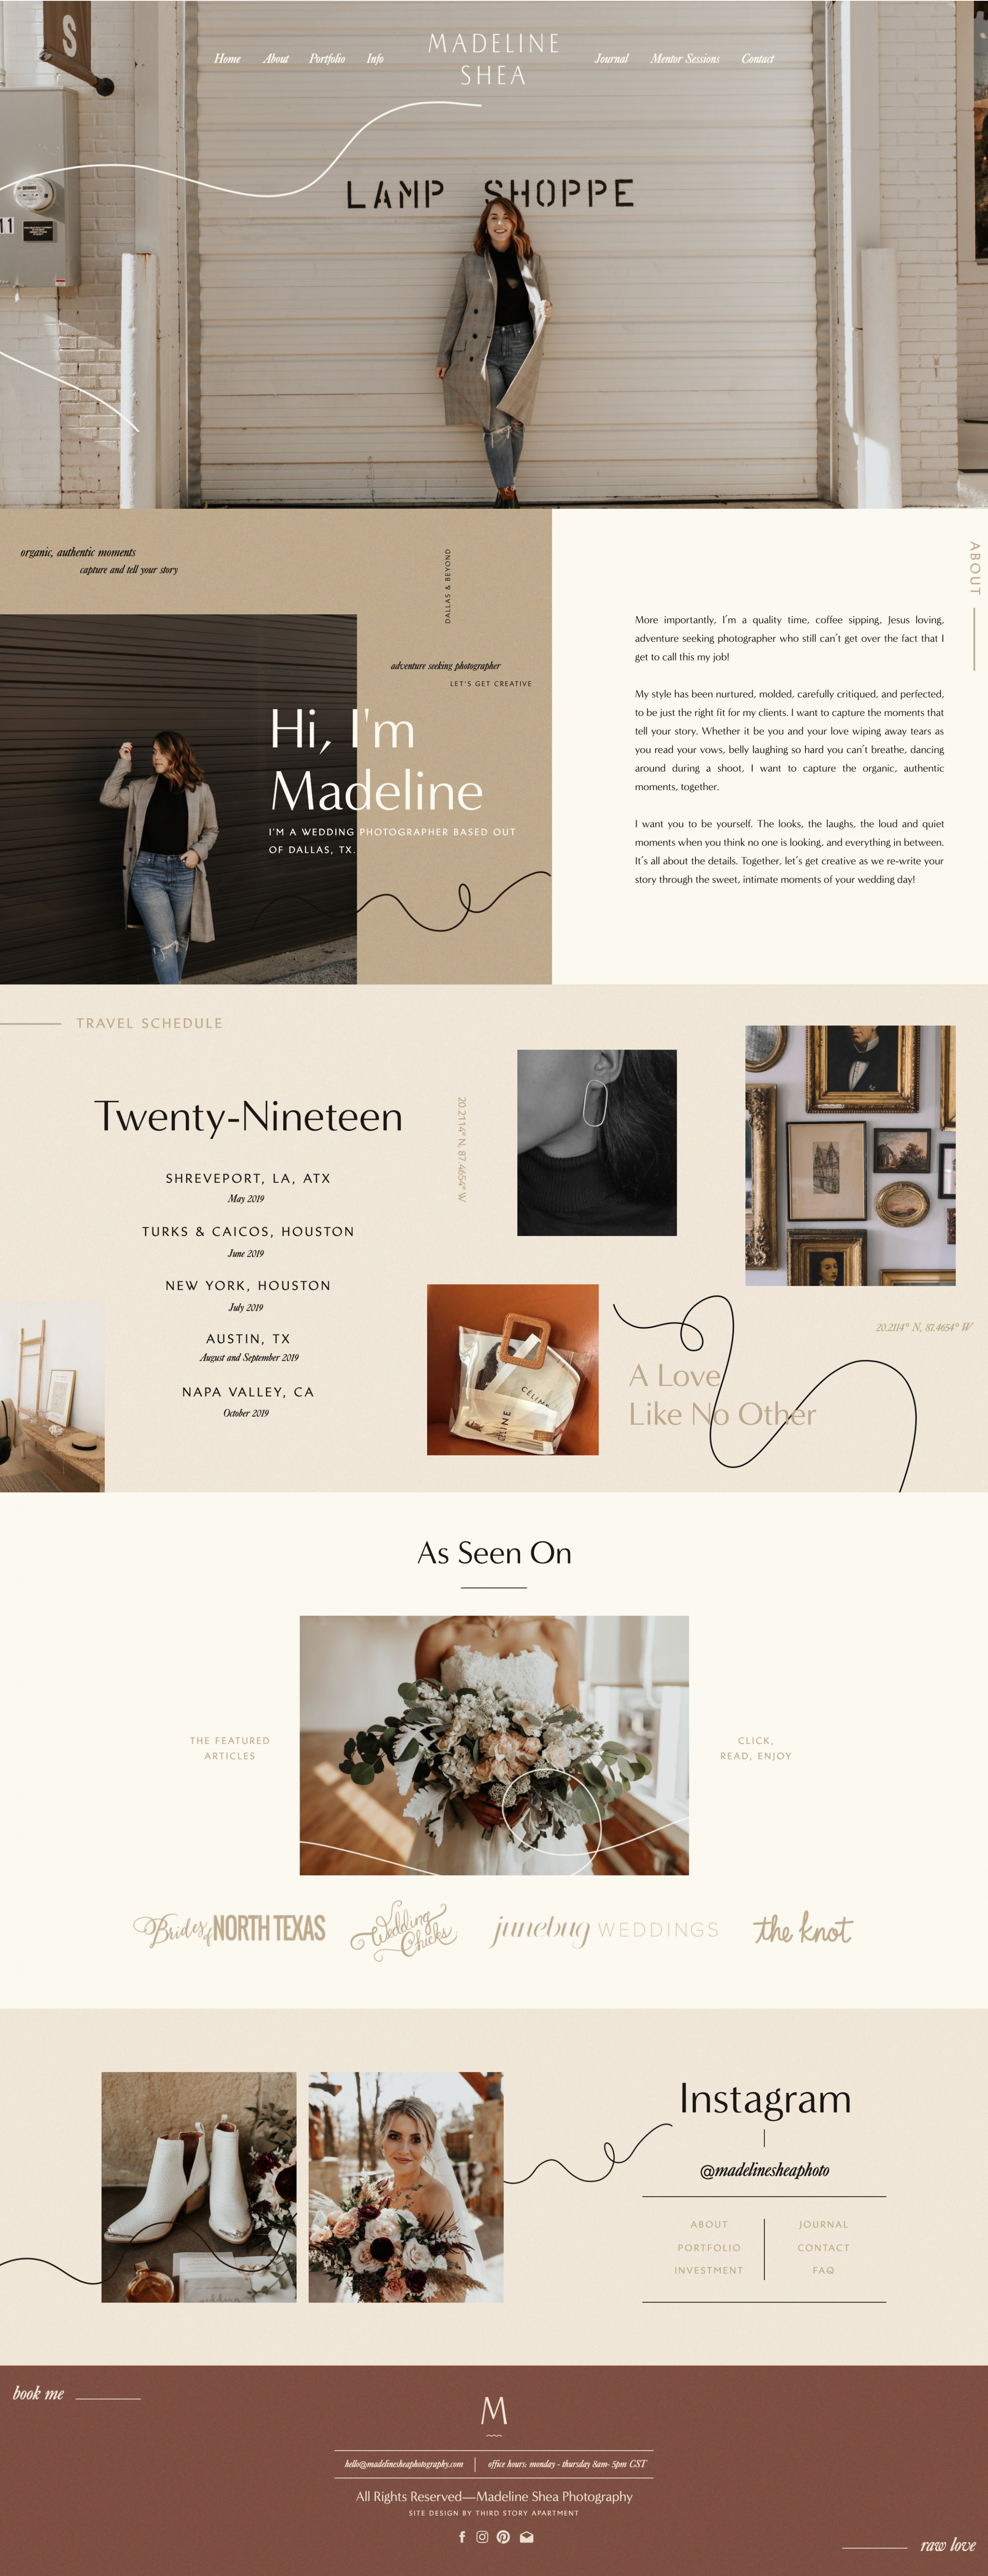 WEBSITE DESIGN by Lindsey Eryn of Third Story Apartment in 8  - Apartment Website Design Inspiration